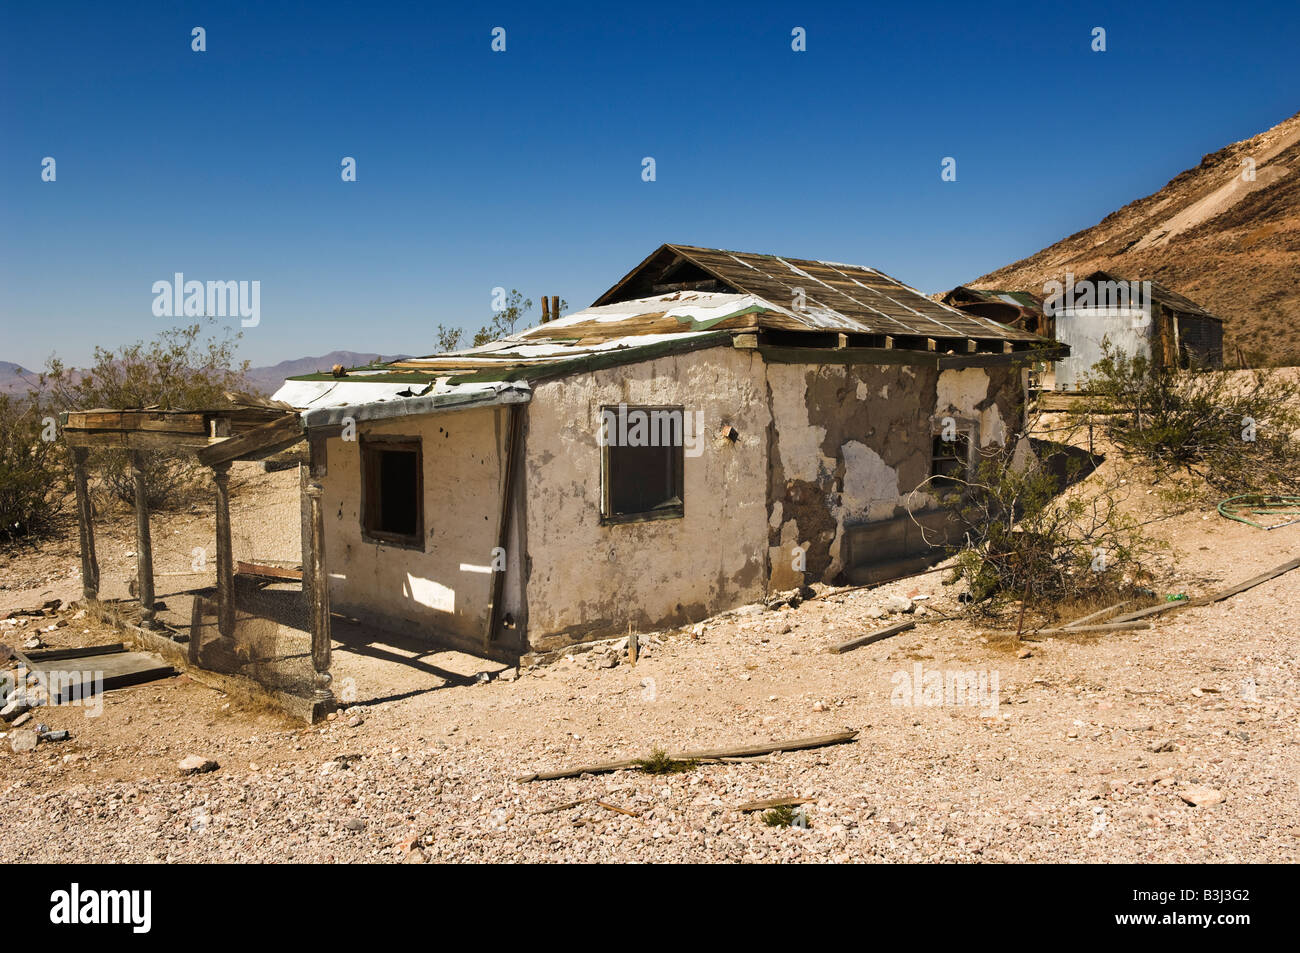 Derelict sheds in Rhyolite, Nevada, USA. - Stock Image